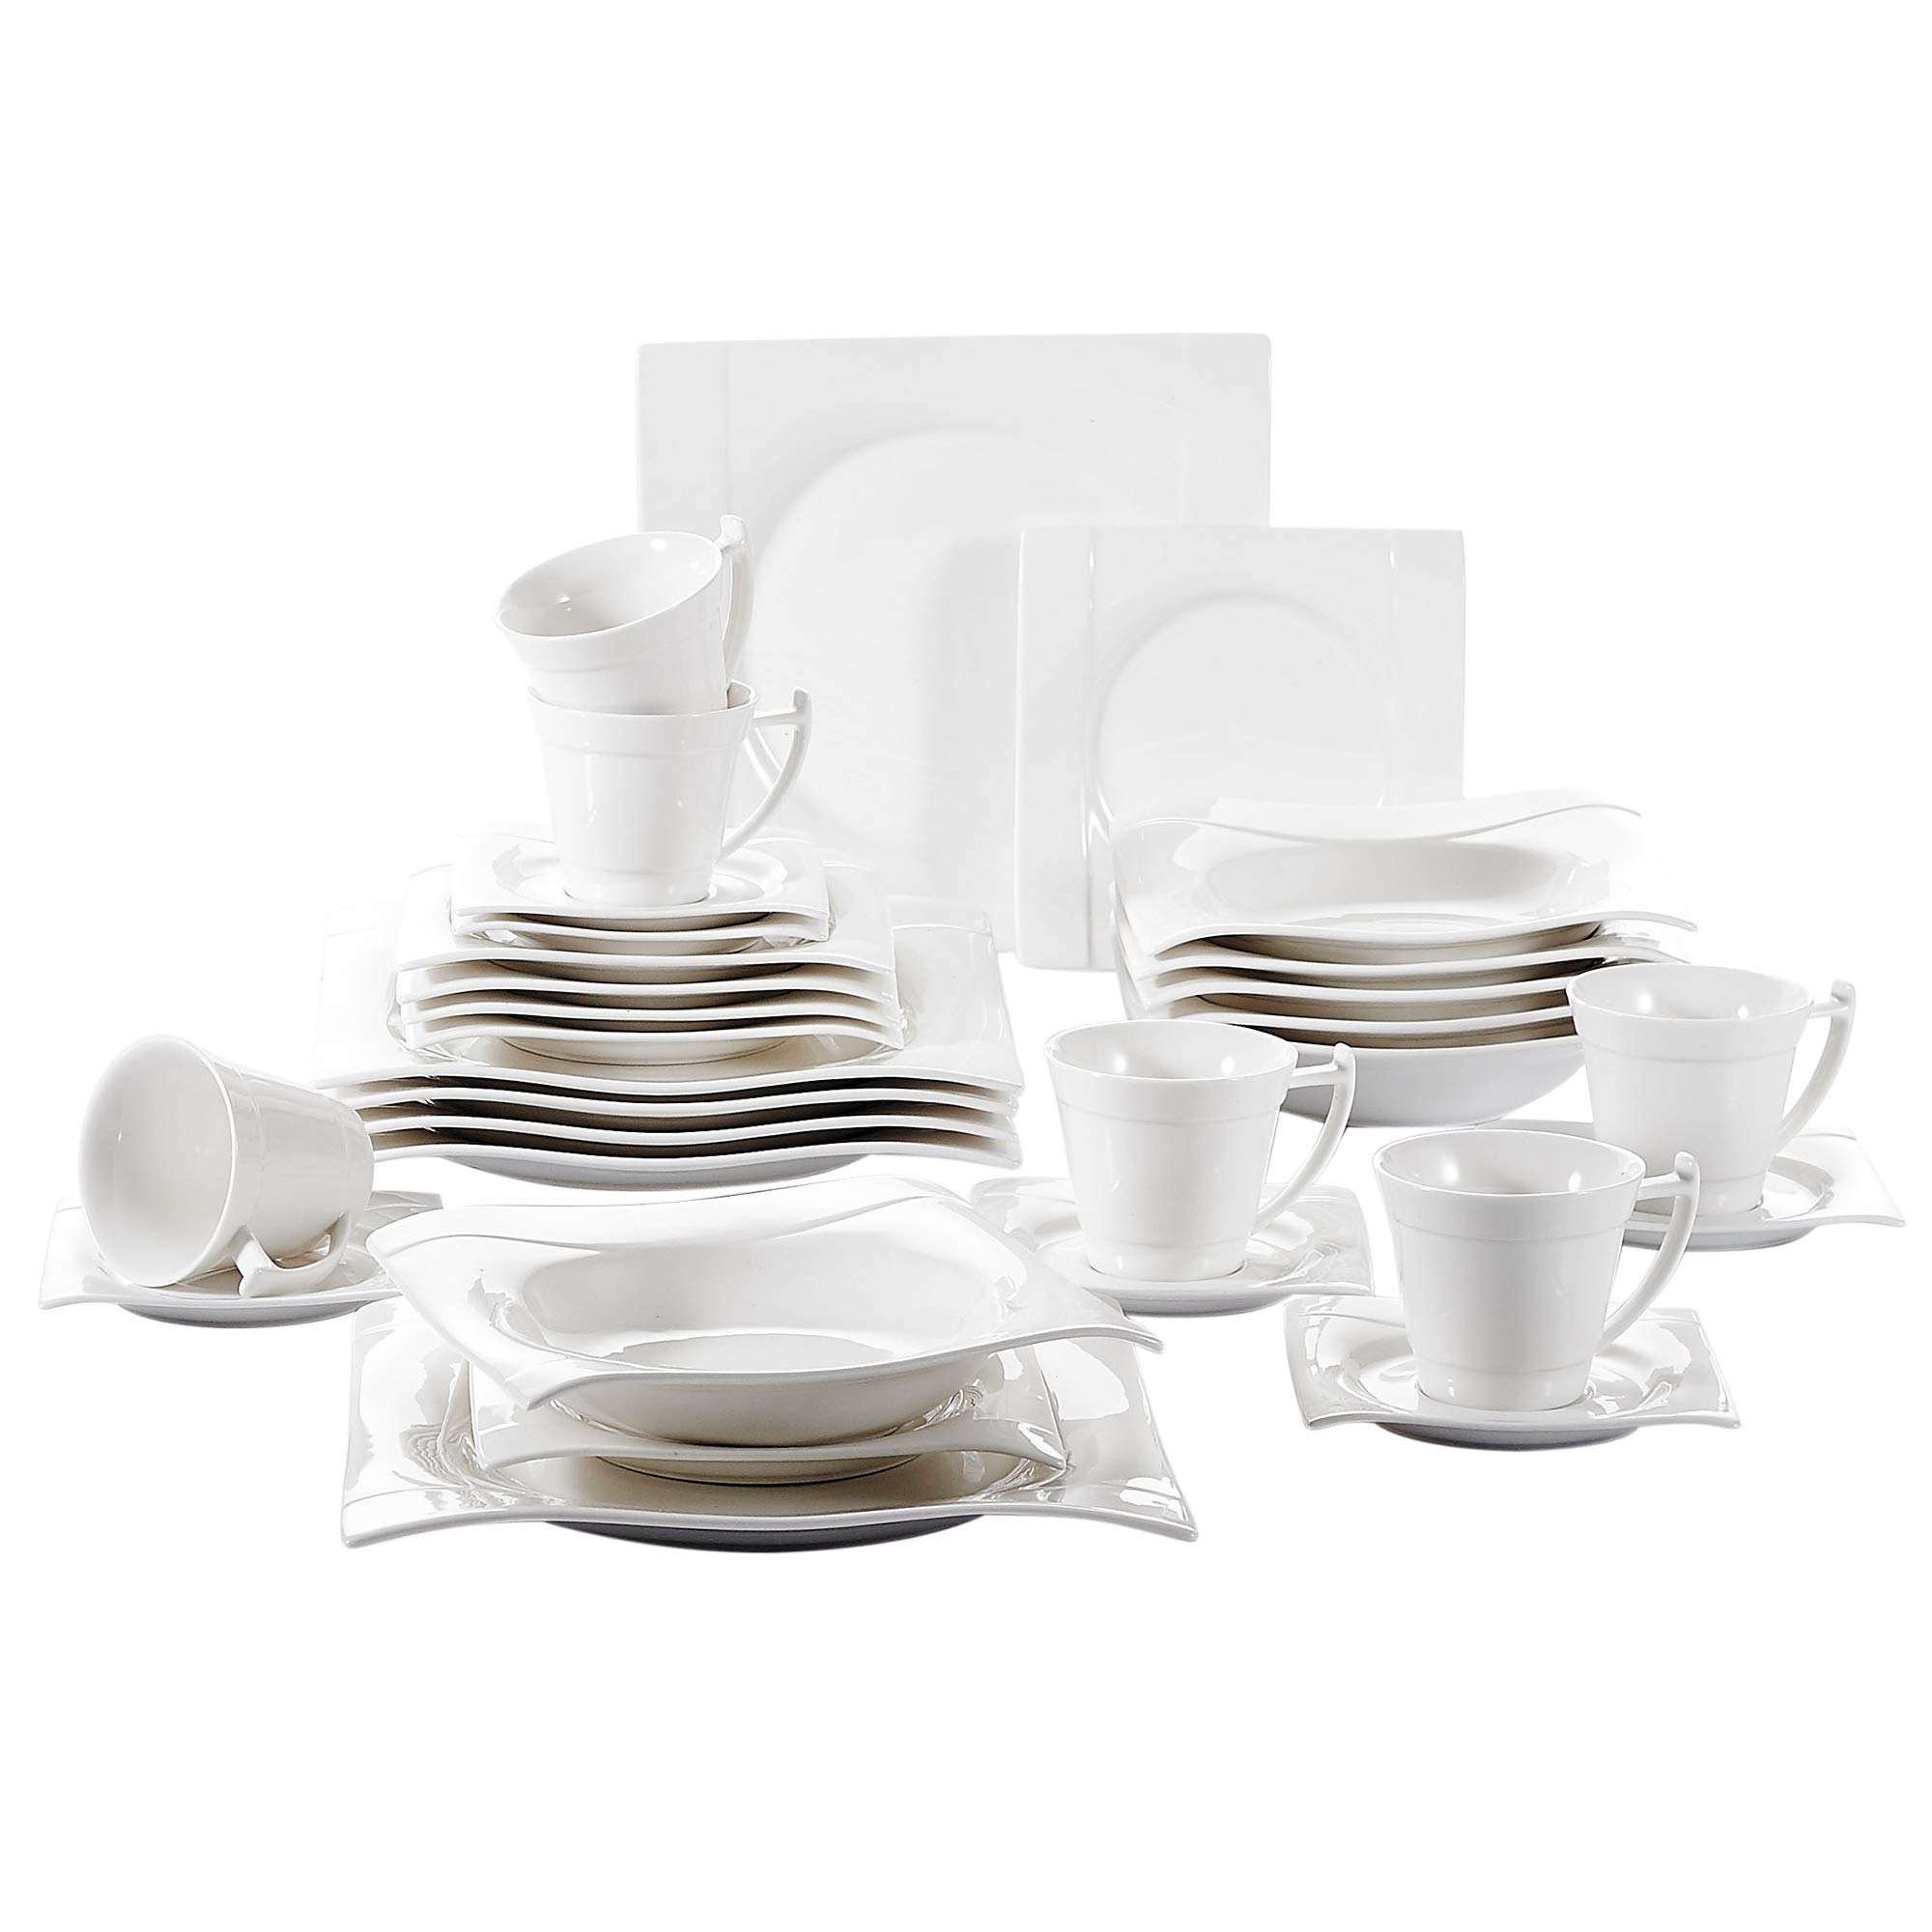 Vancasso 30 Pieces Ivory White Porcelain Dining Service Tableware Set of 6 x Cups/Saucers/Dinner Plates/Dessert Plates/Soup Plates for 6